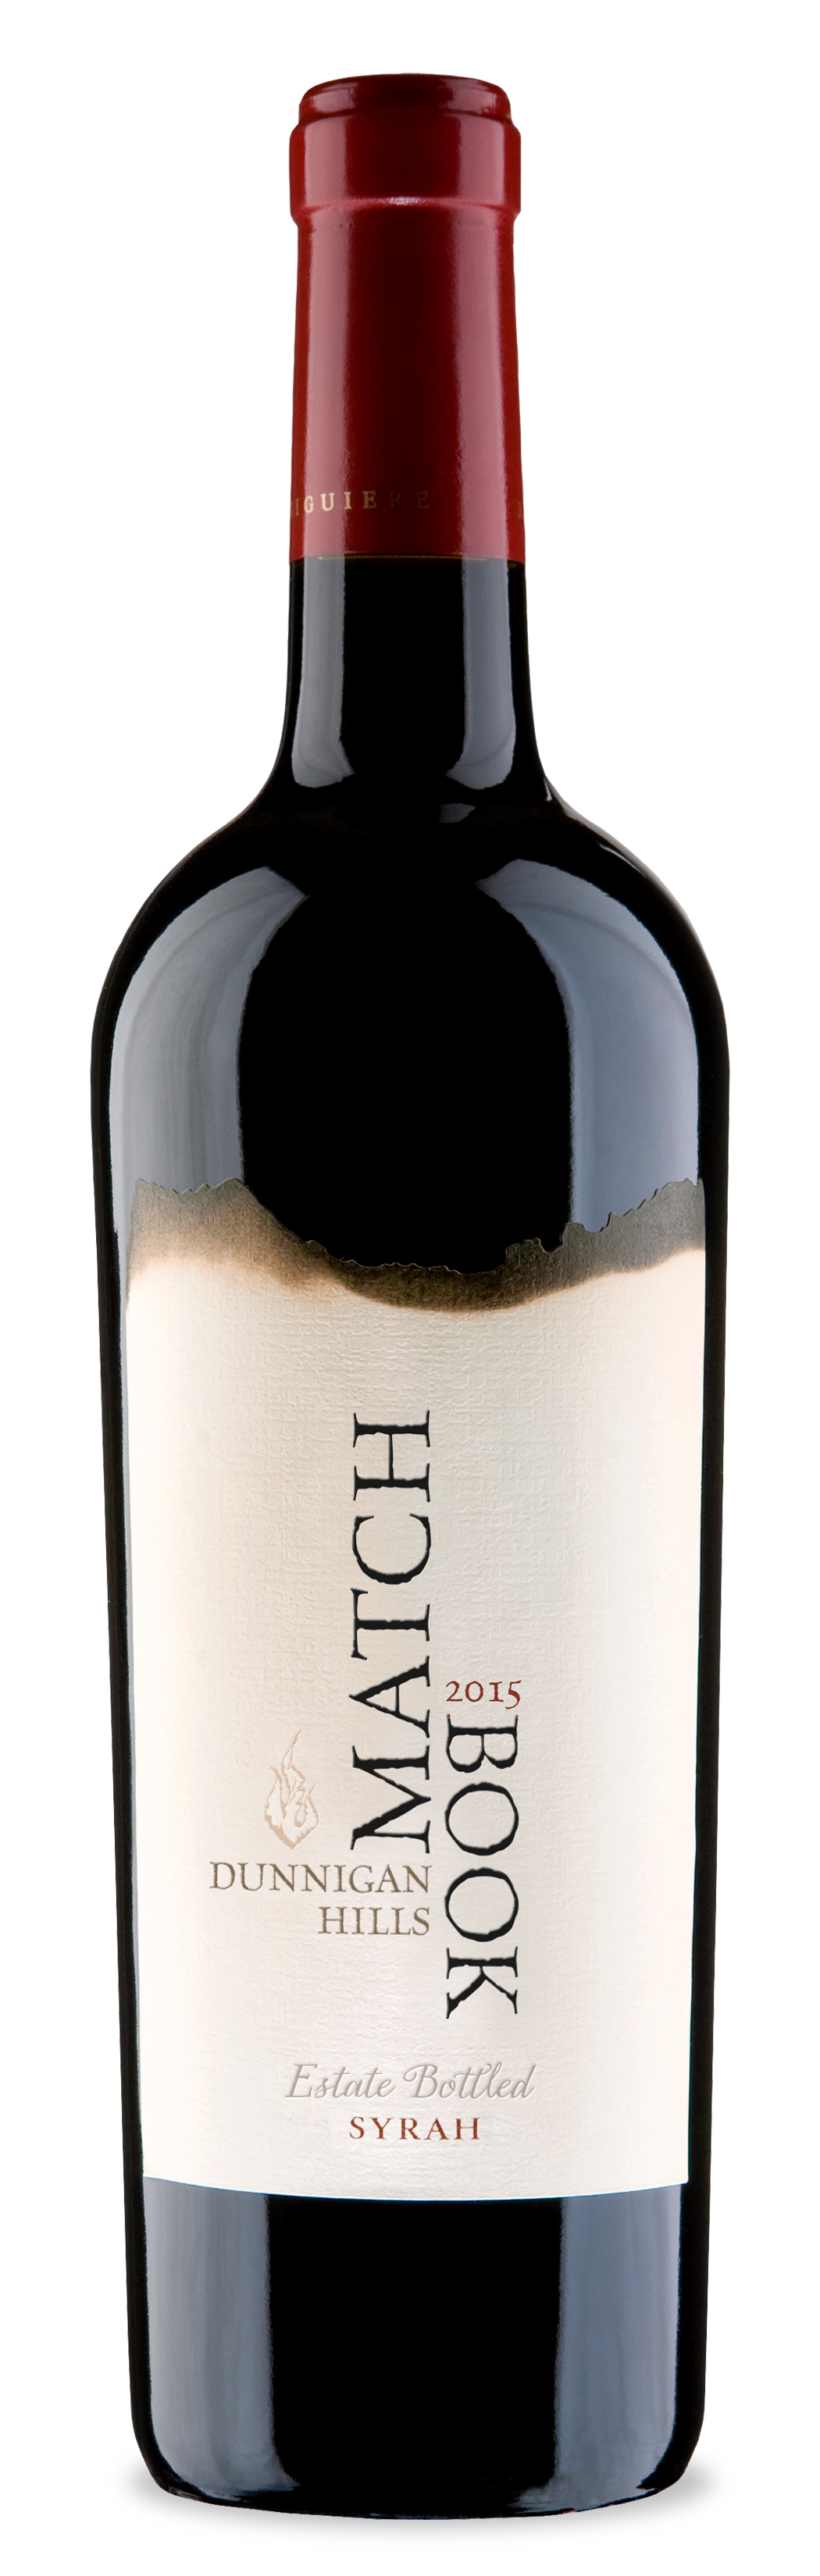 Product Image for 2015 Matchbook Estate Bottled Dunnigan Hills Syrah